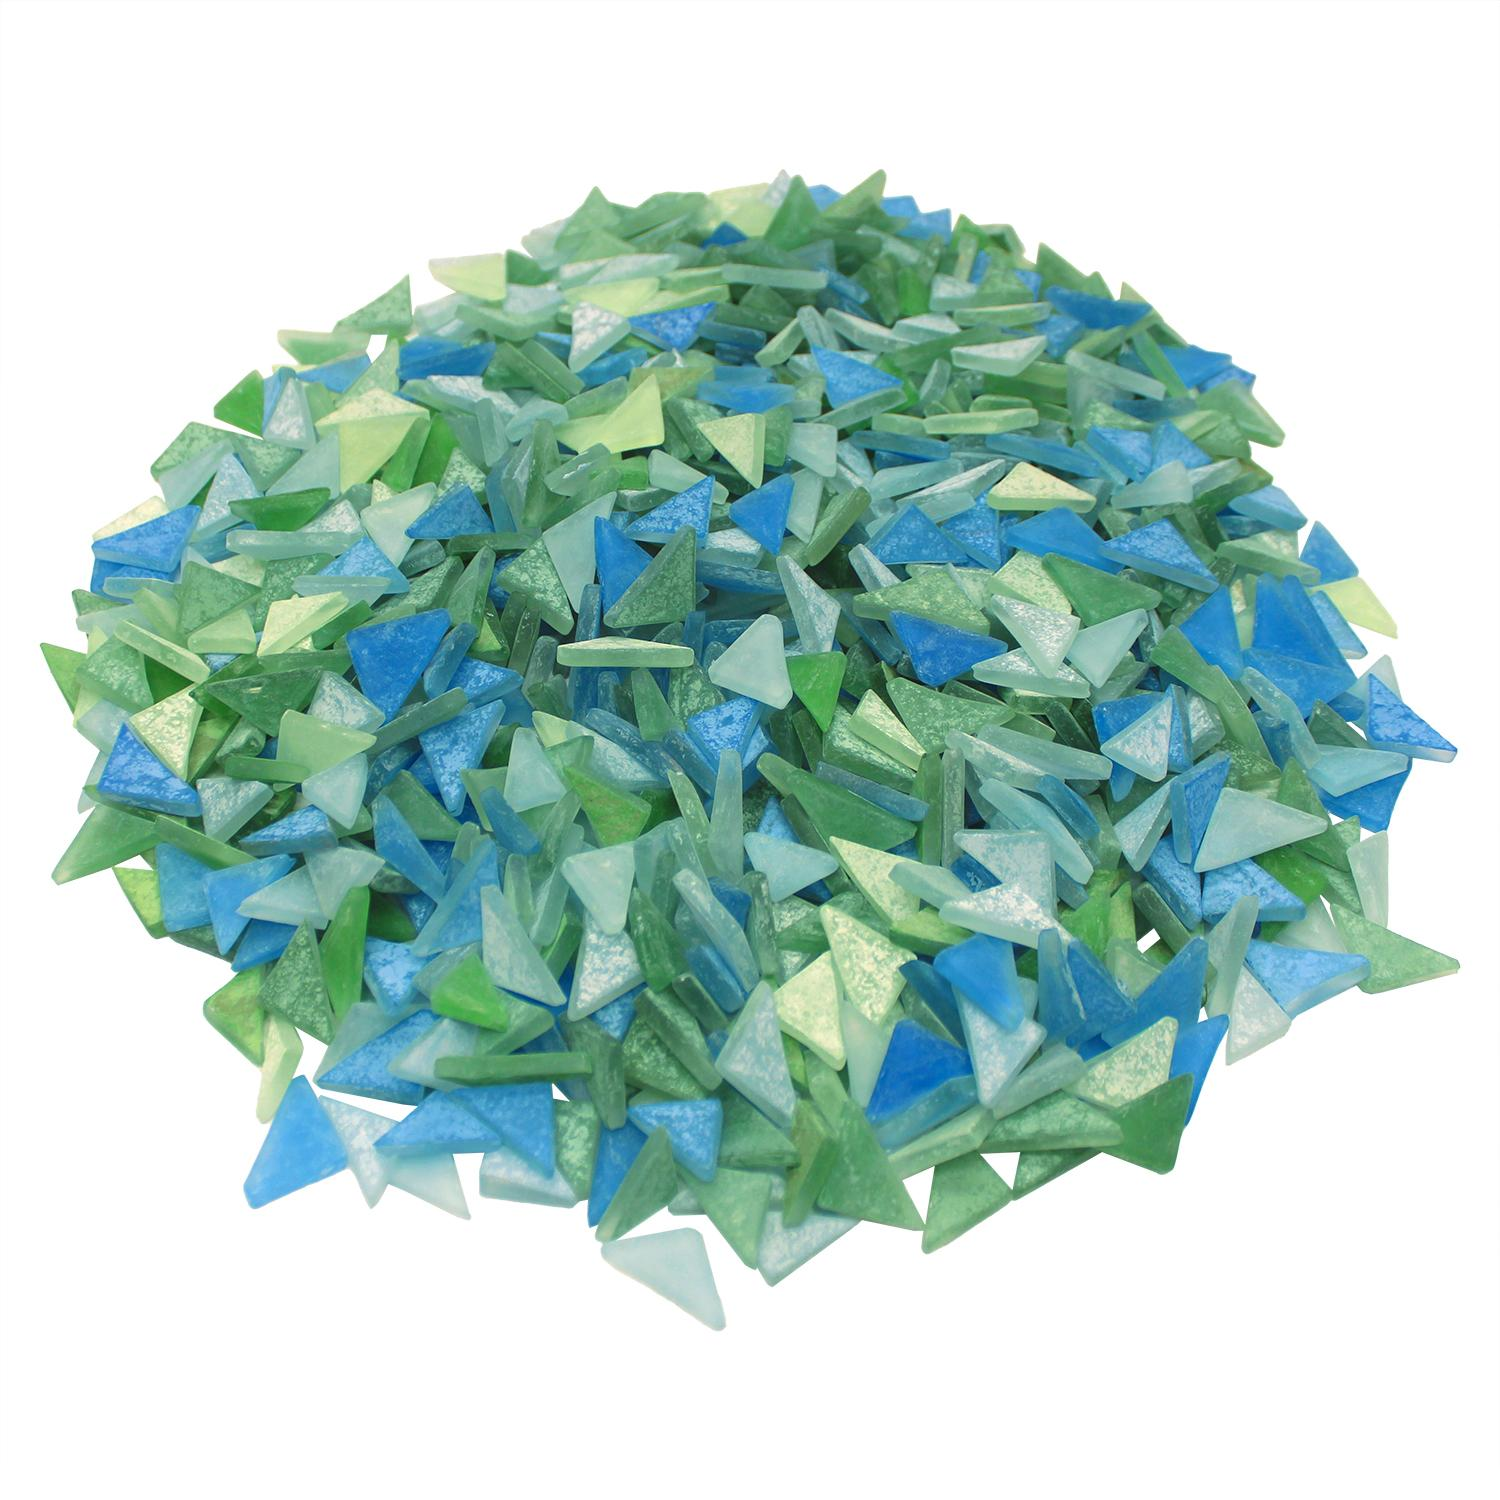 Cobblestone Frosted Bay Glass Gems - 3 Lb